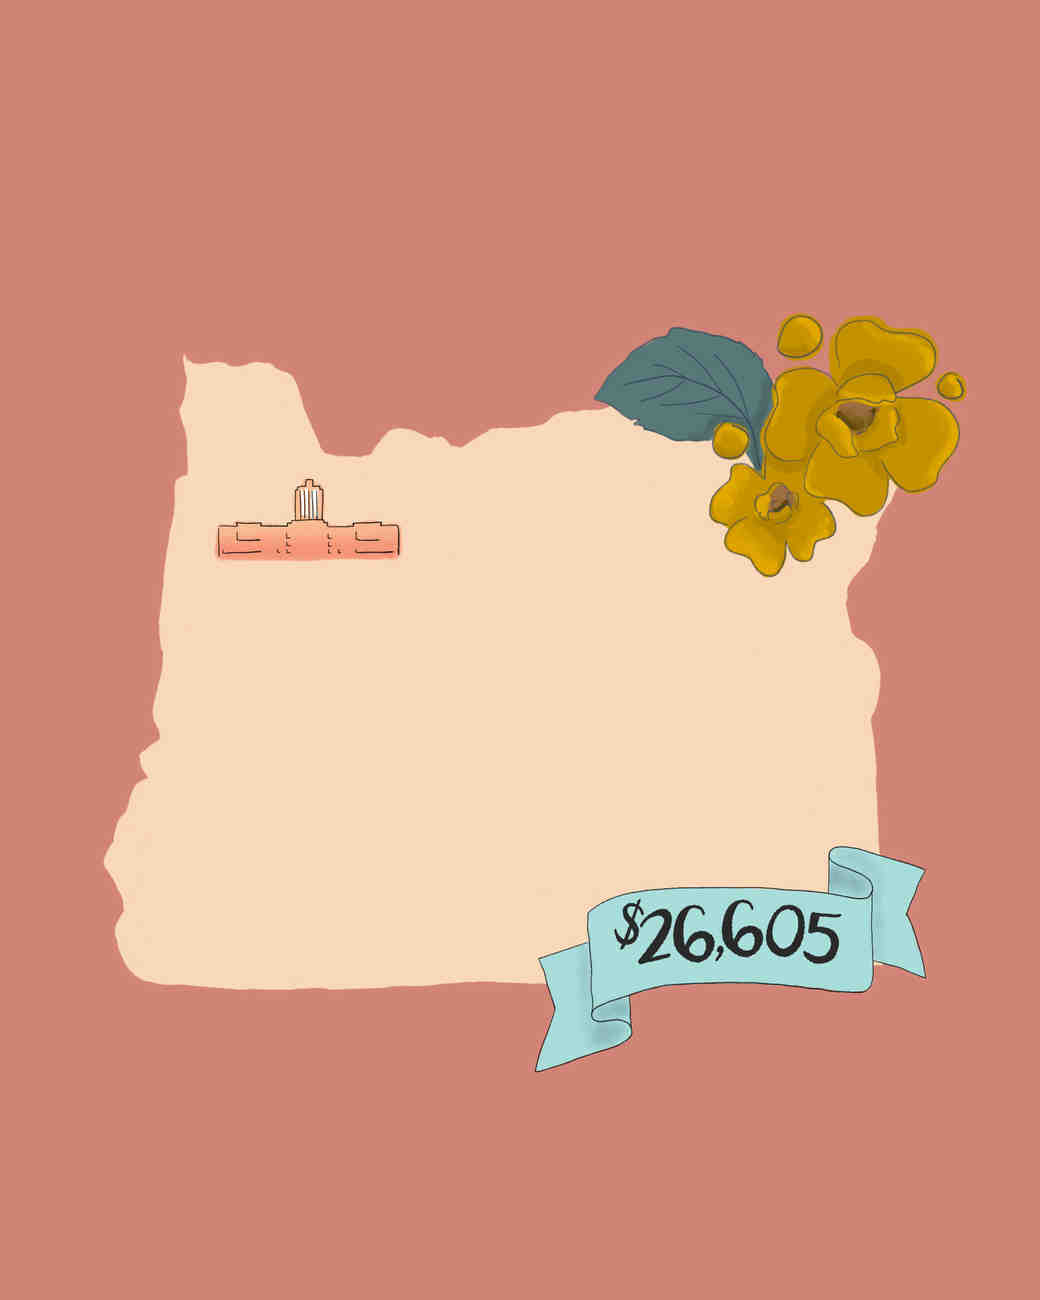 state wedding costs illustration oregon